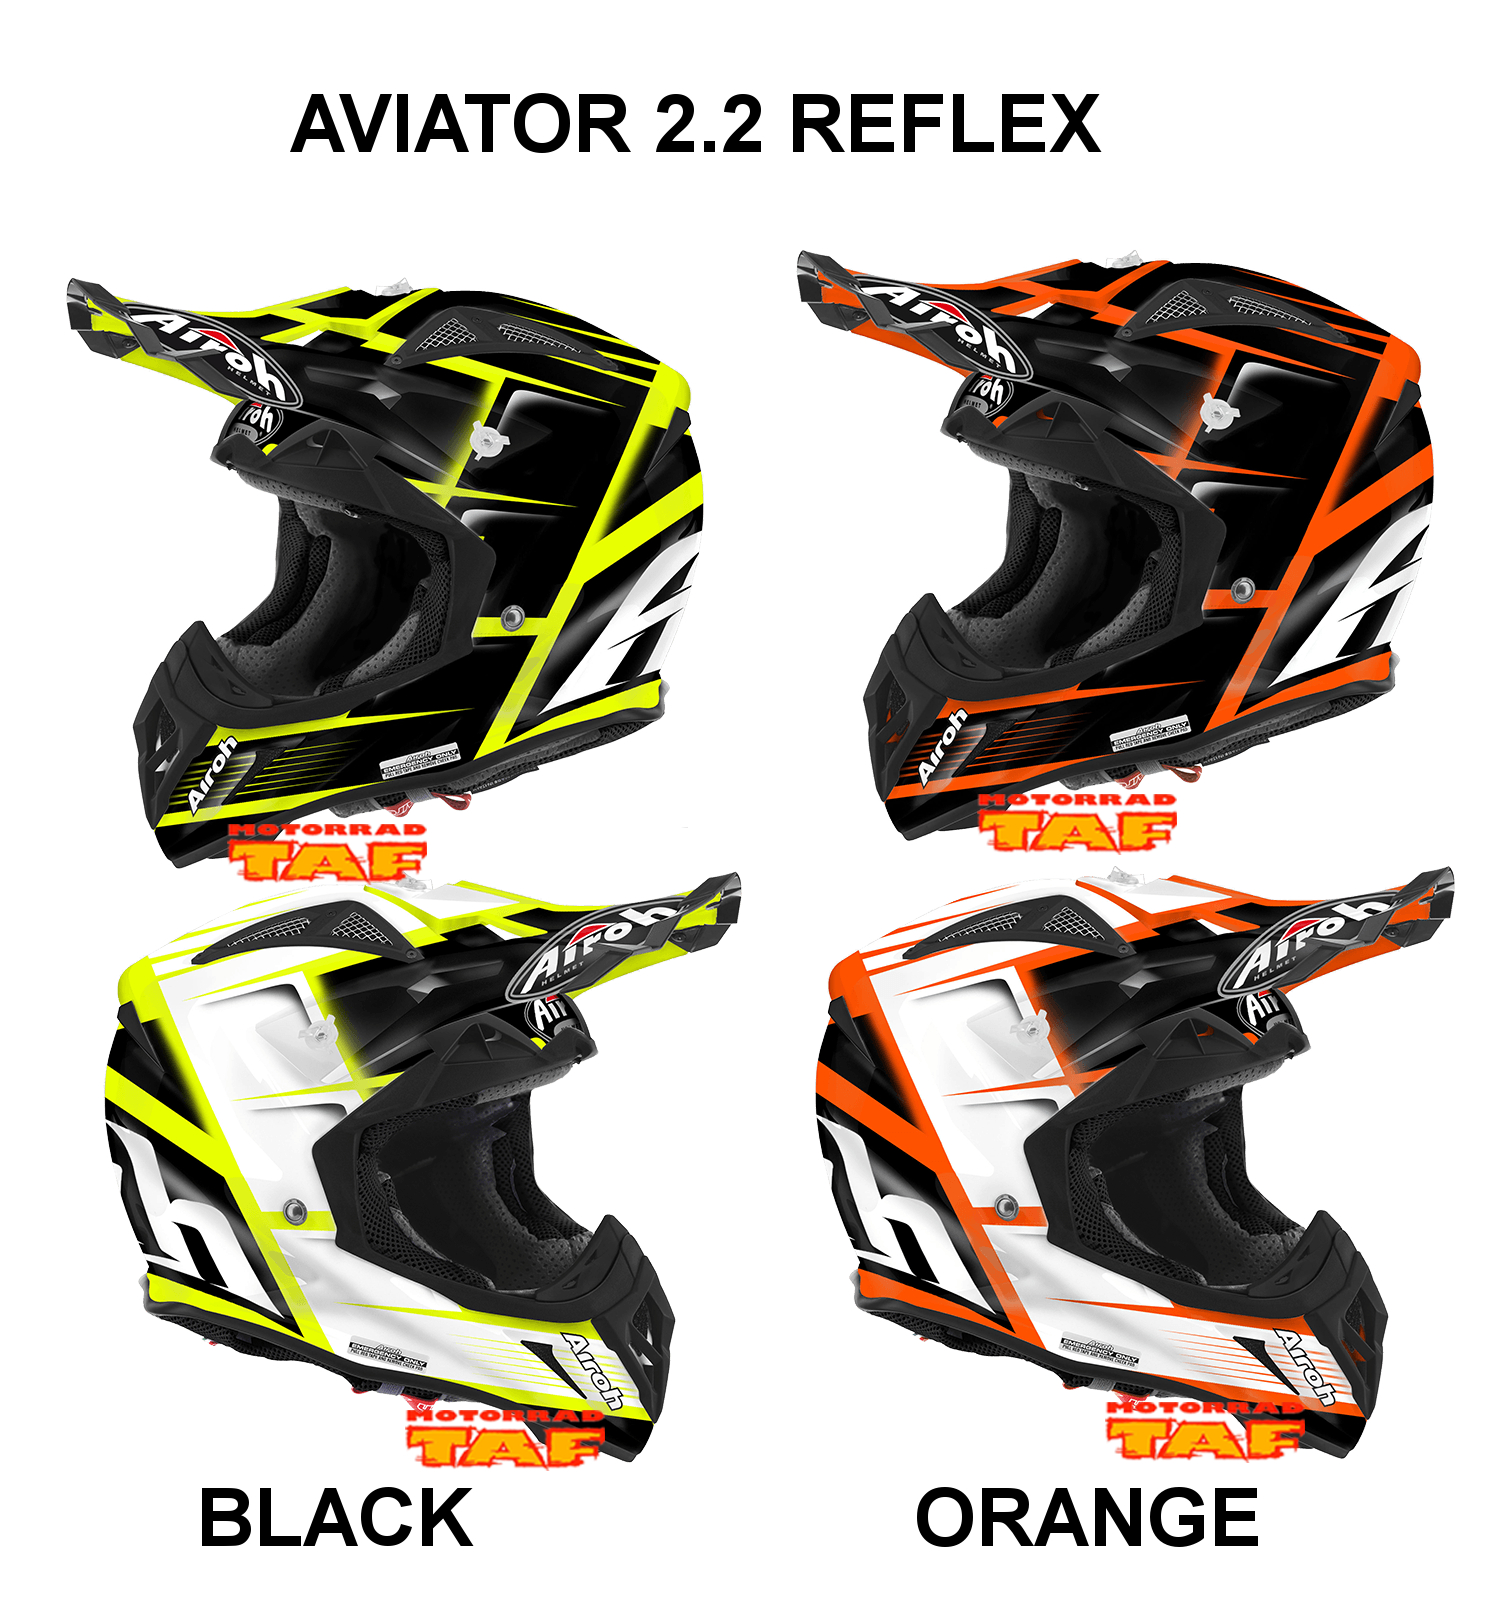 motorrad taf airoh aviator 2 2 reflex 39 16 onlineshop. Black Bedroom Furniture Sets. Home Design Ideas